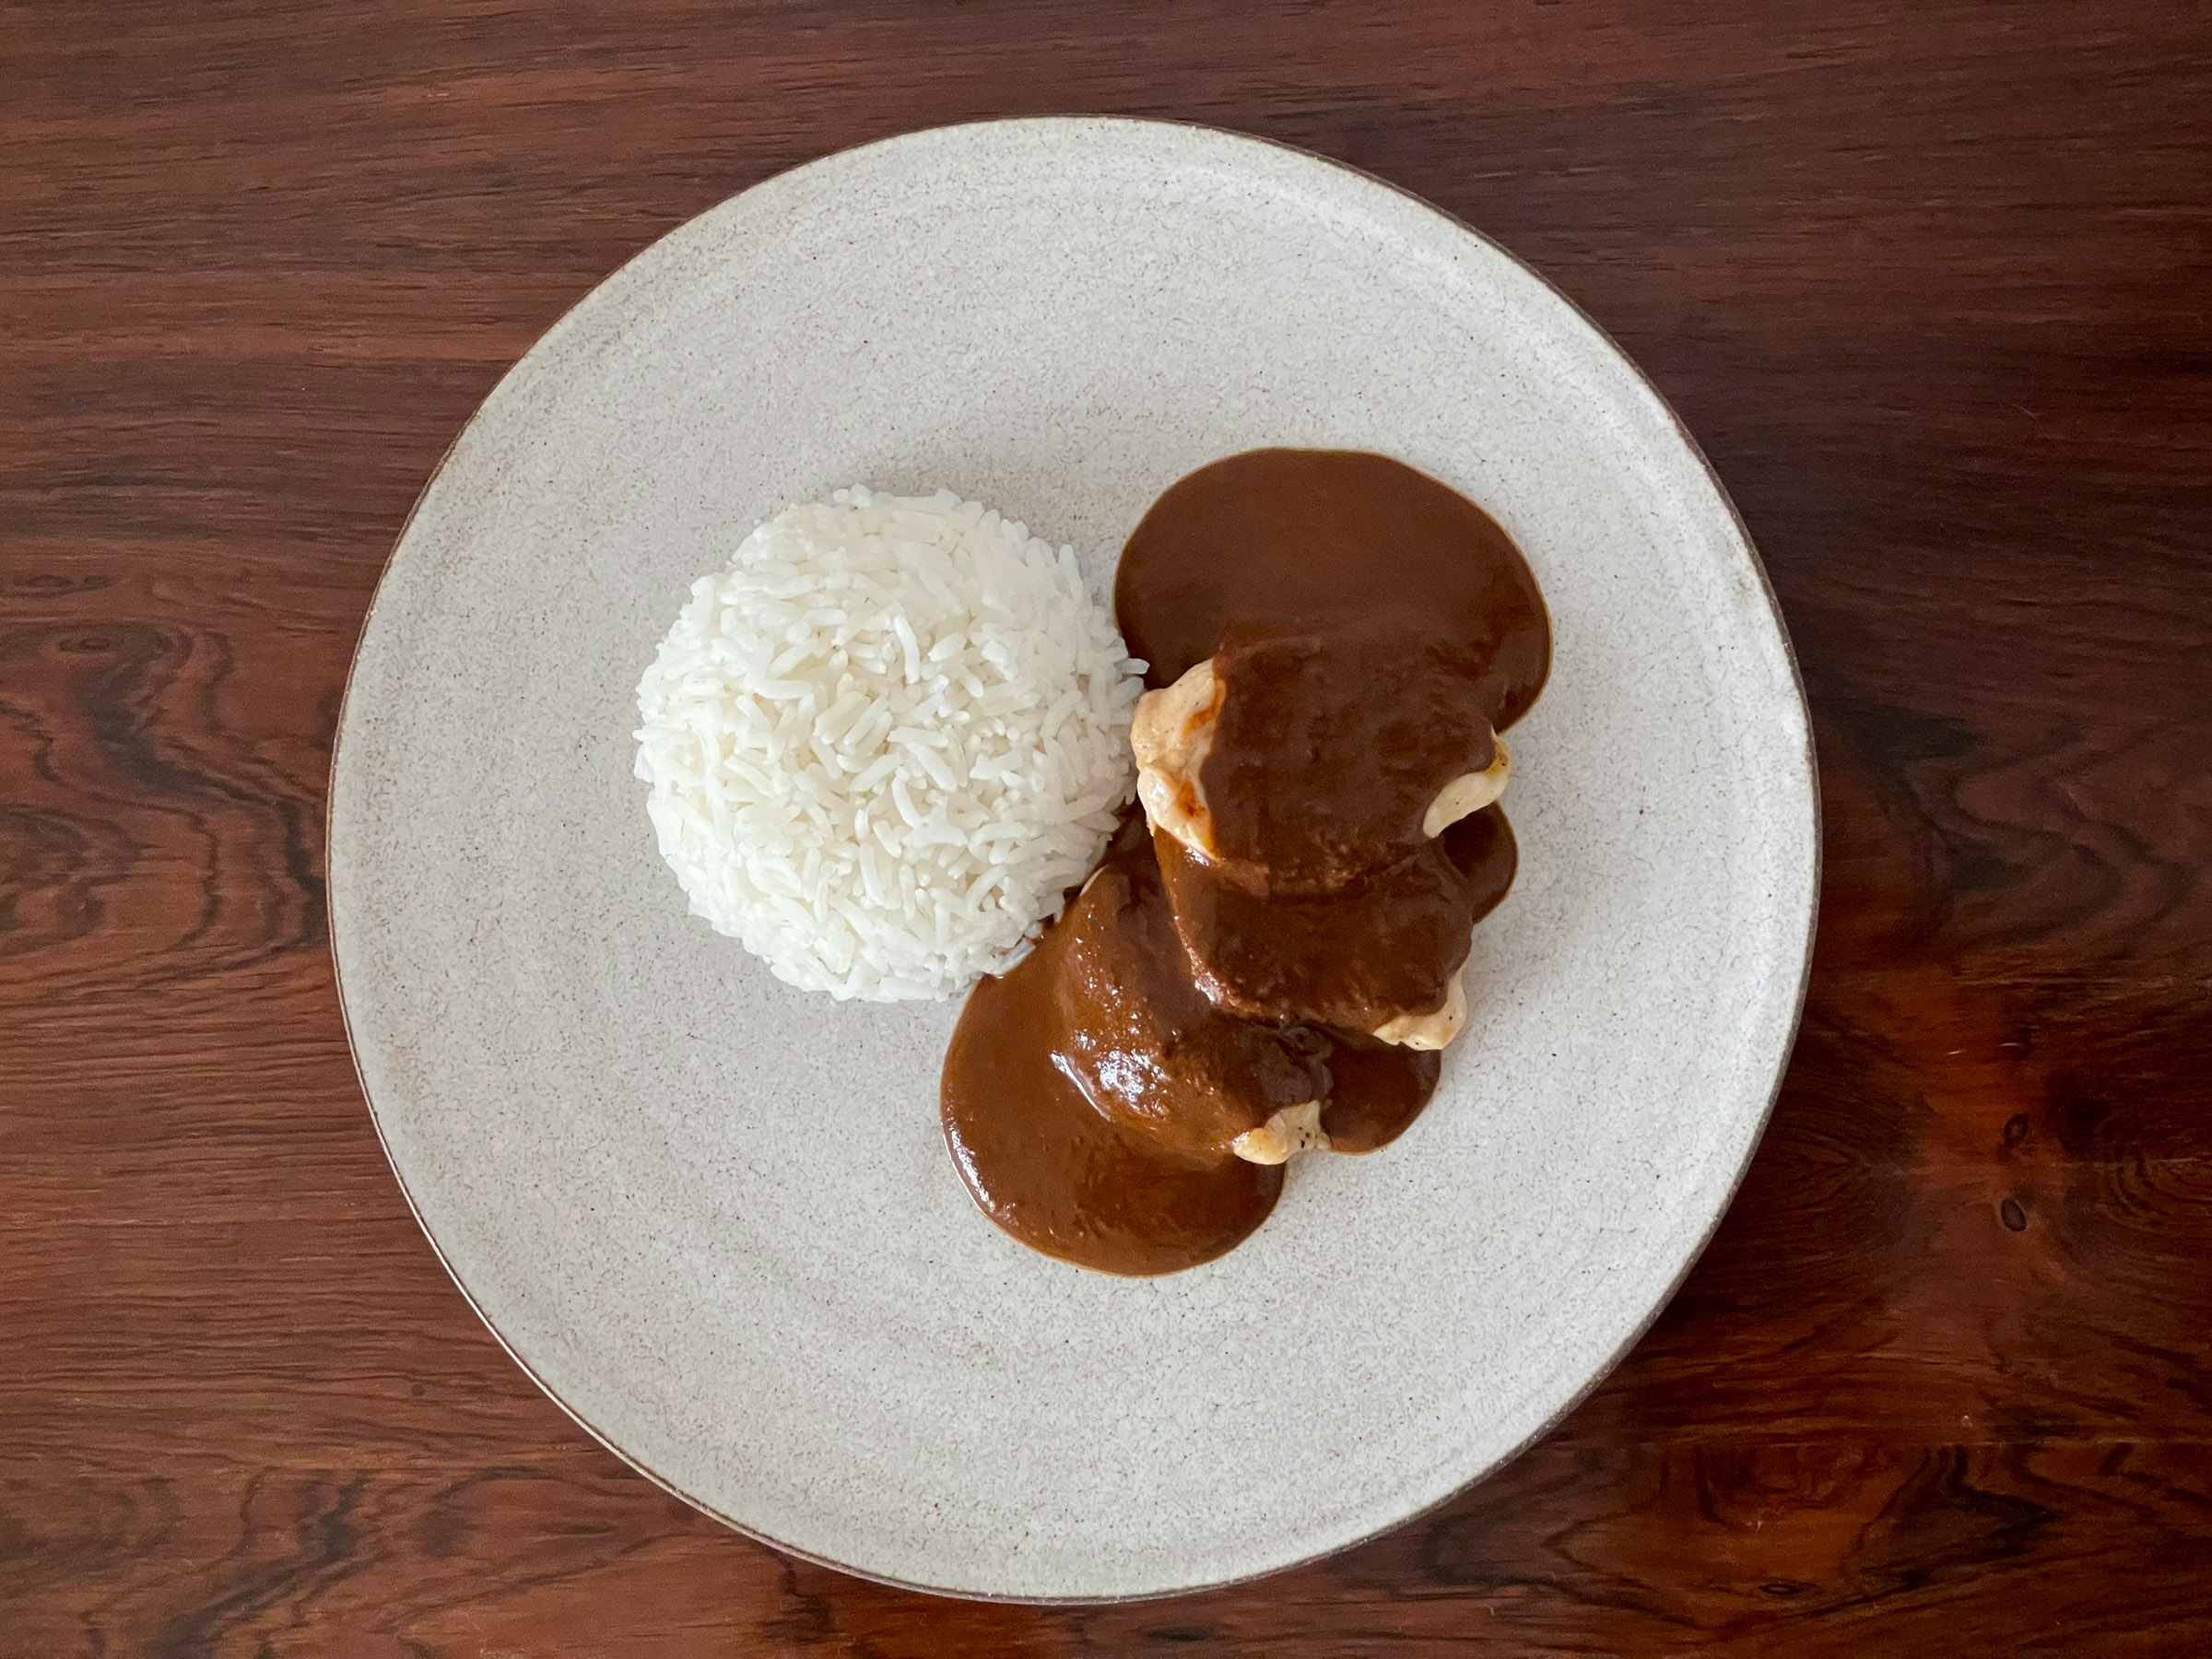 Ricardo Alcaide discusses creative cooking and reveals one of his favourite recipes: Mexican Mole Poblano